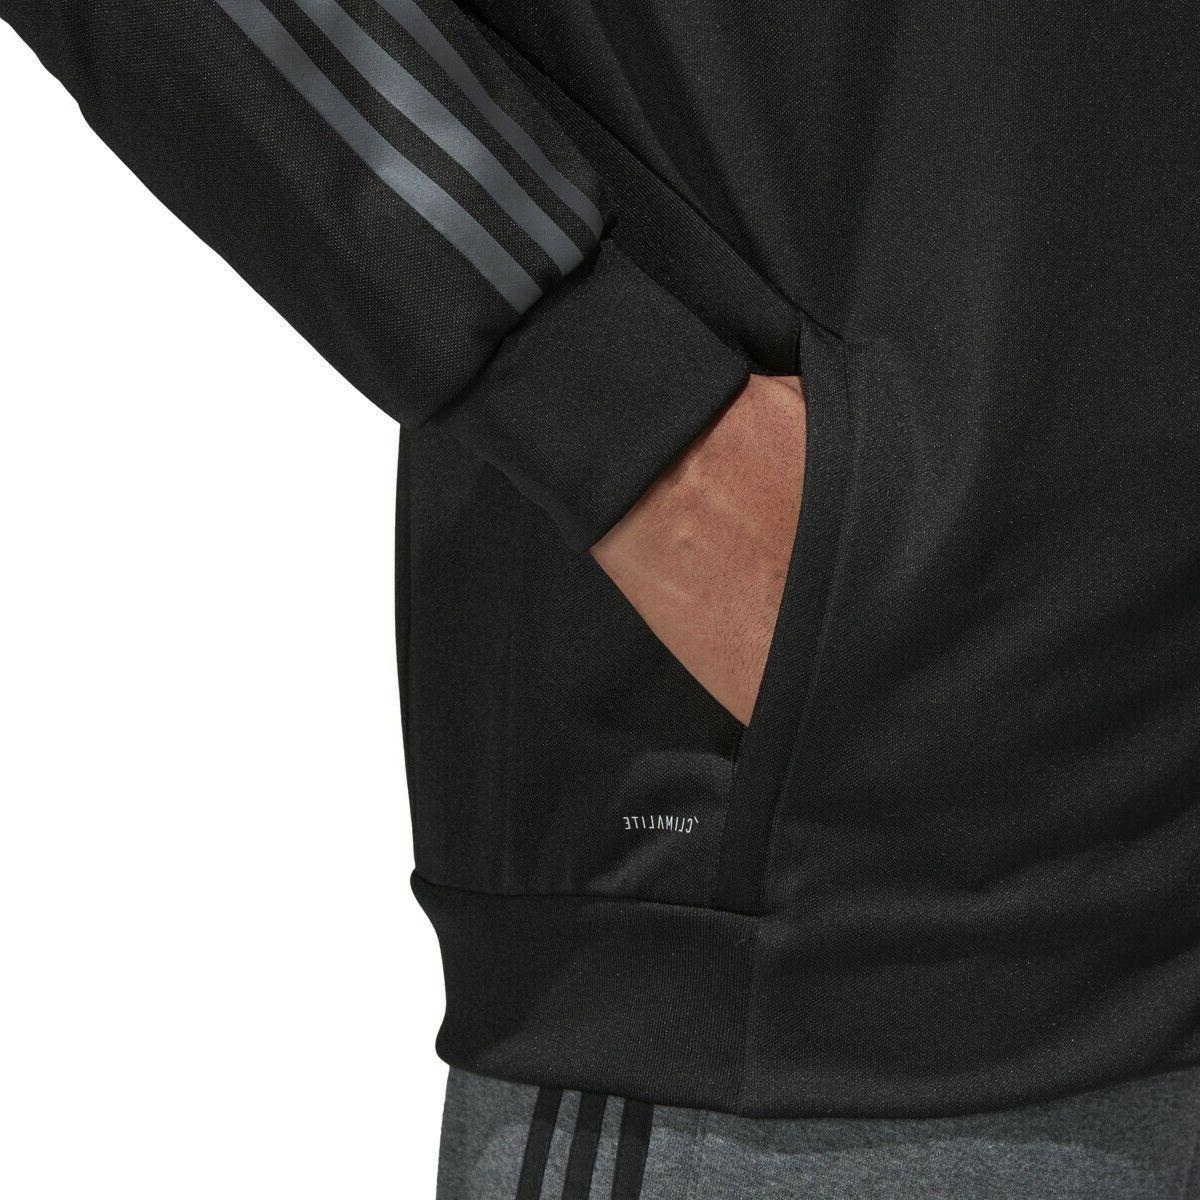 Mens Adidas AFS Track Jacket Black Zip Athletic Size